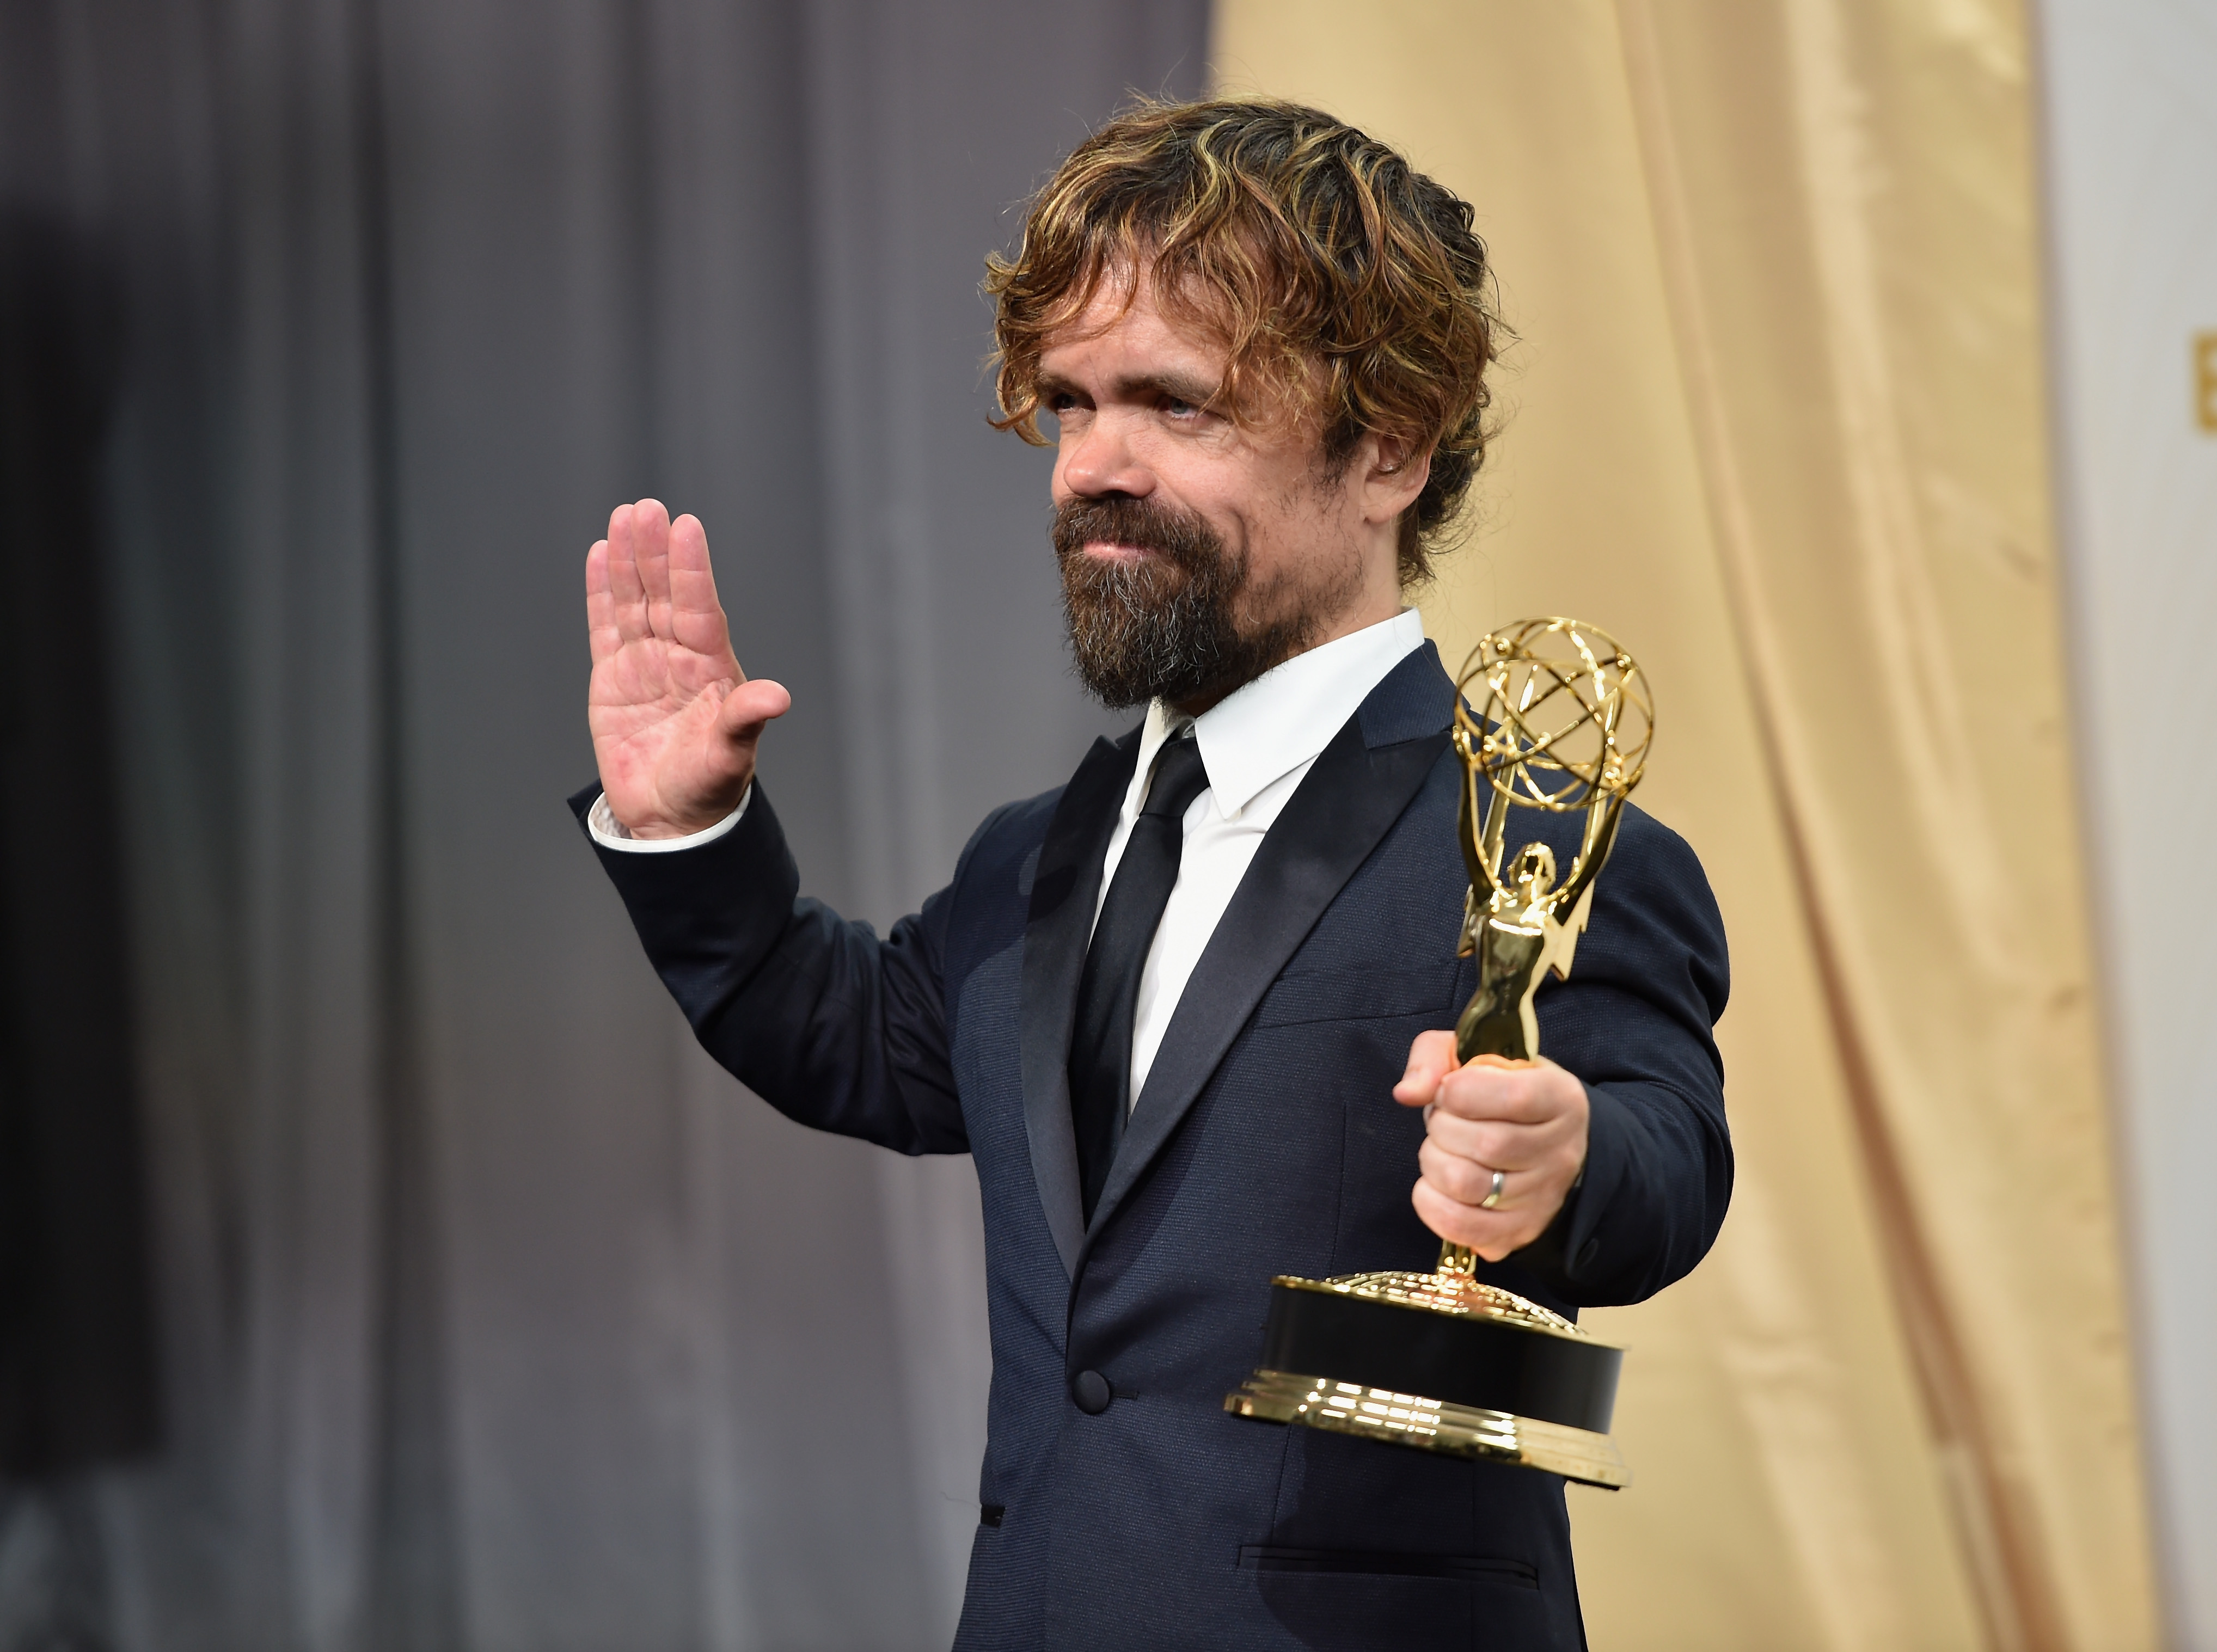 Actor Peter Dinklage, winner of Outstanding Supporting Actor in a Drama Series for 'Game of Thrones', at the 67th Annual Primetime Emmy Awards on Sept. 20, 2015 in L.A.